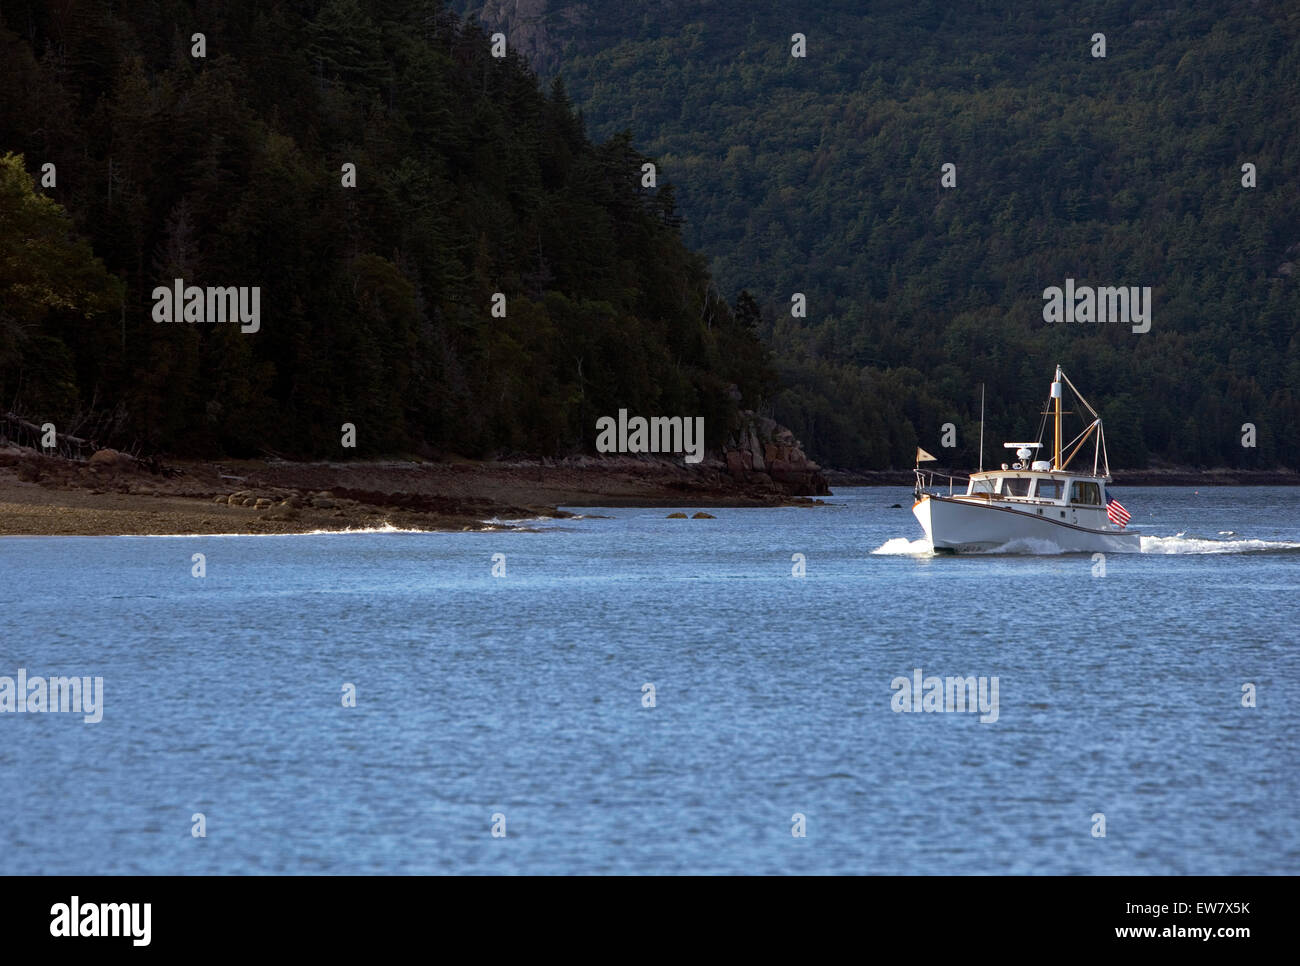 A classic fishing boat motors near the dark wooded shore. - Stock Image